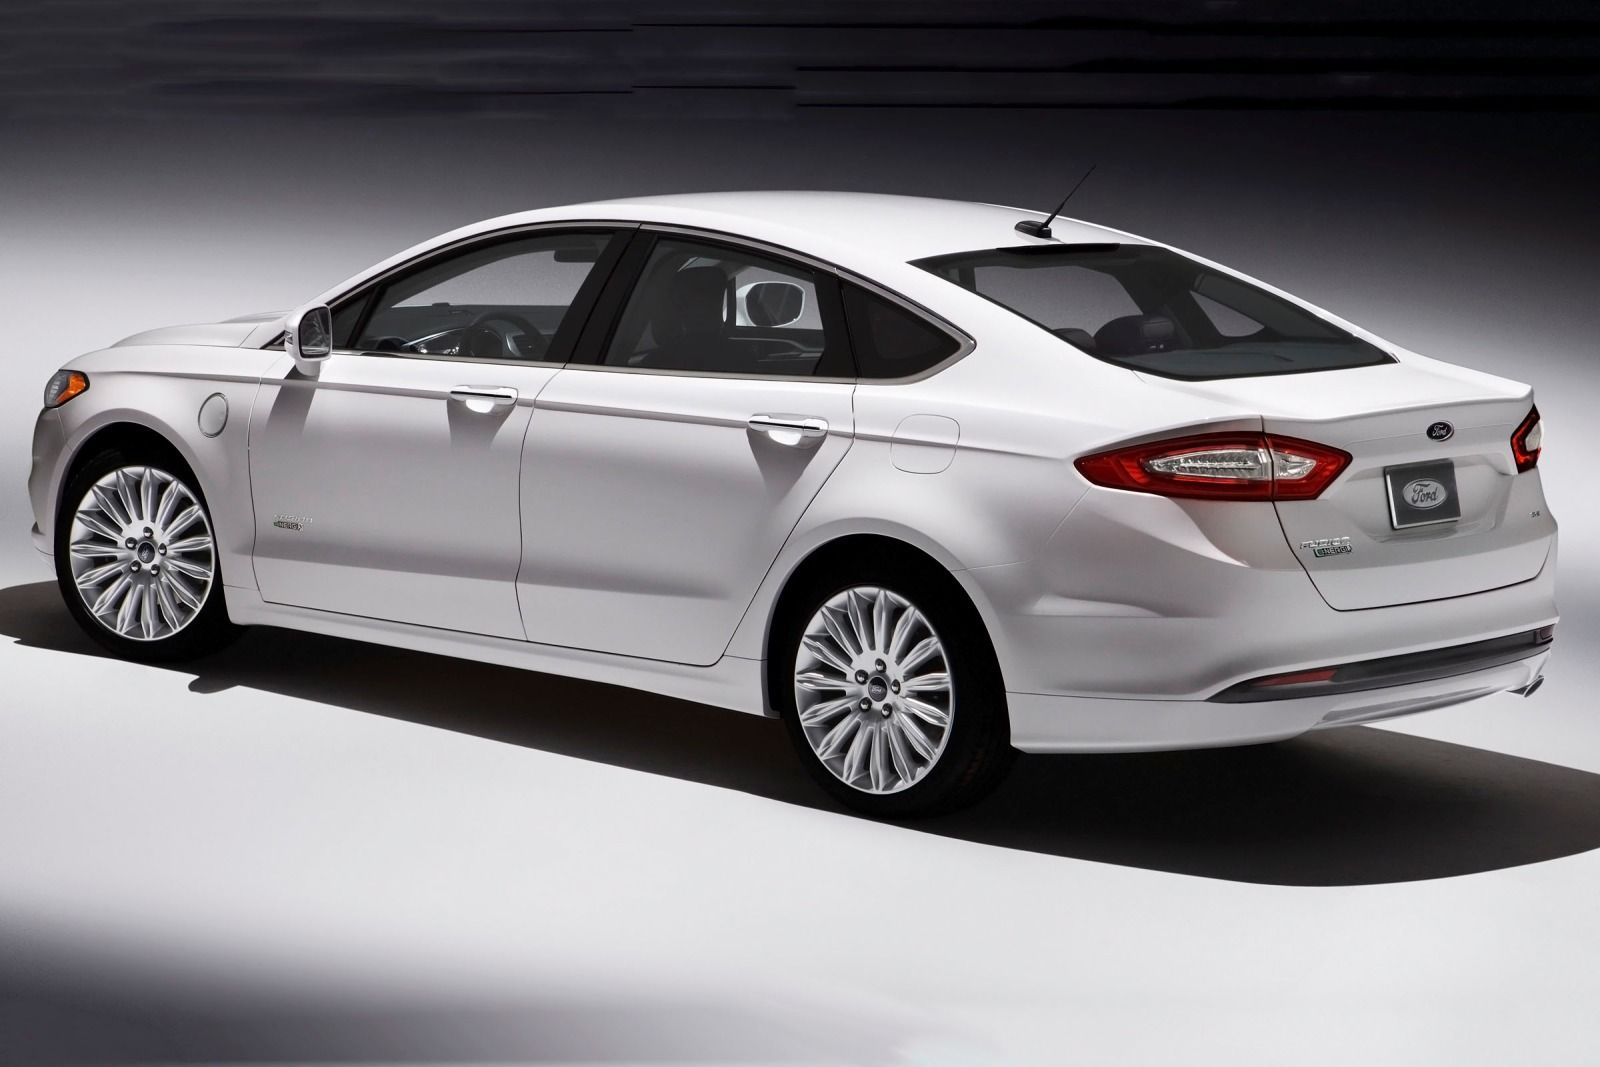 2016 Ford Fusion Hybrid Is The Featured Model S Image Added In Car Pictures Category By Author On Jun